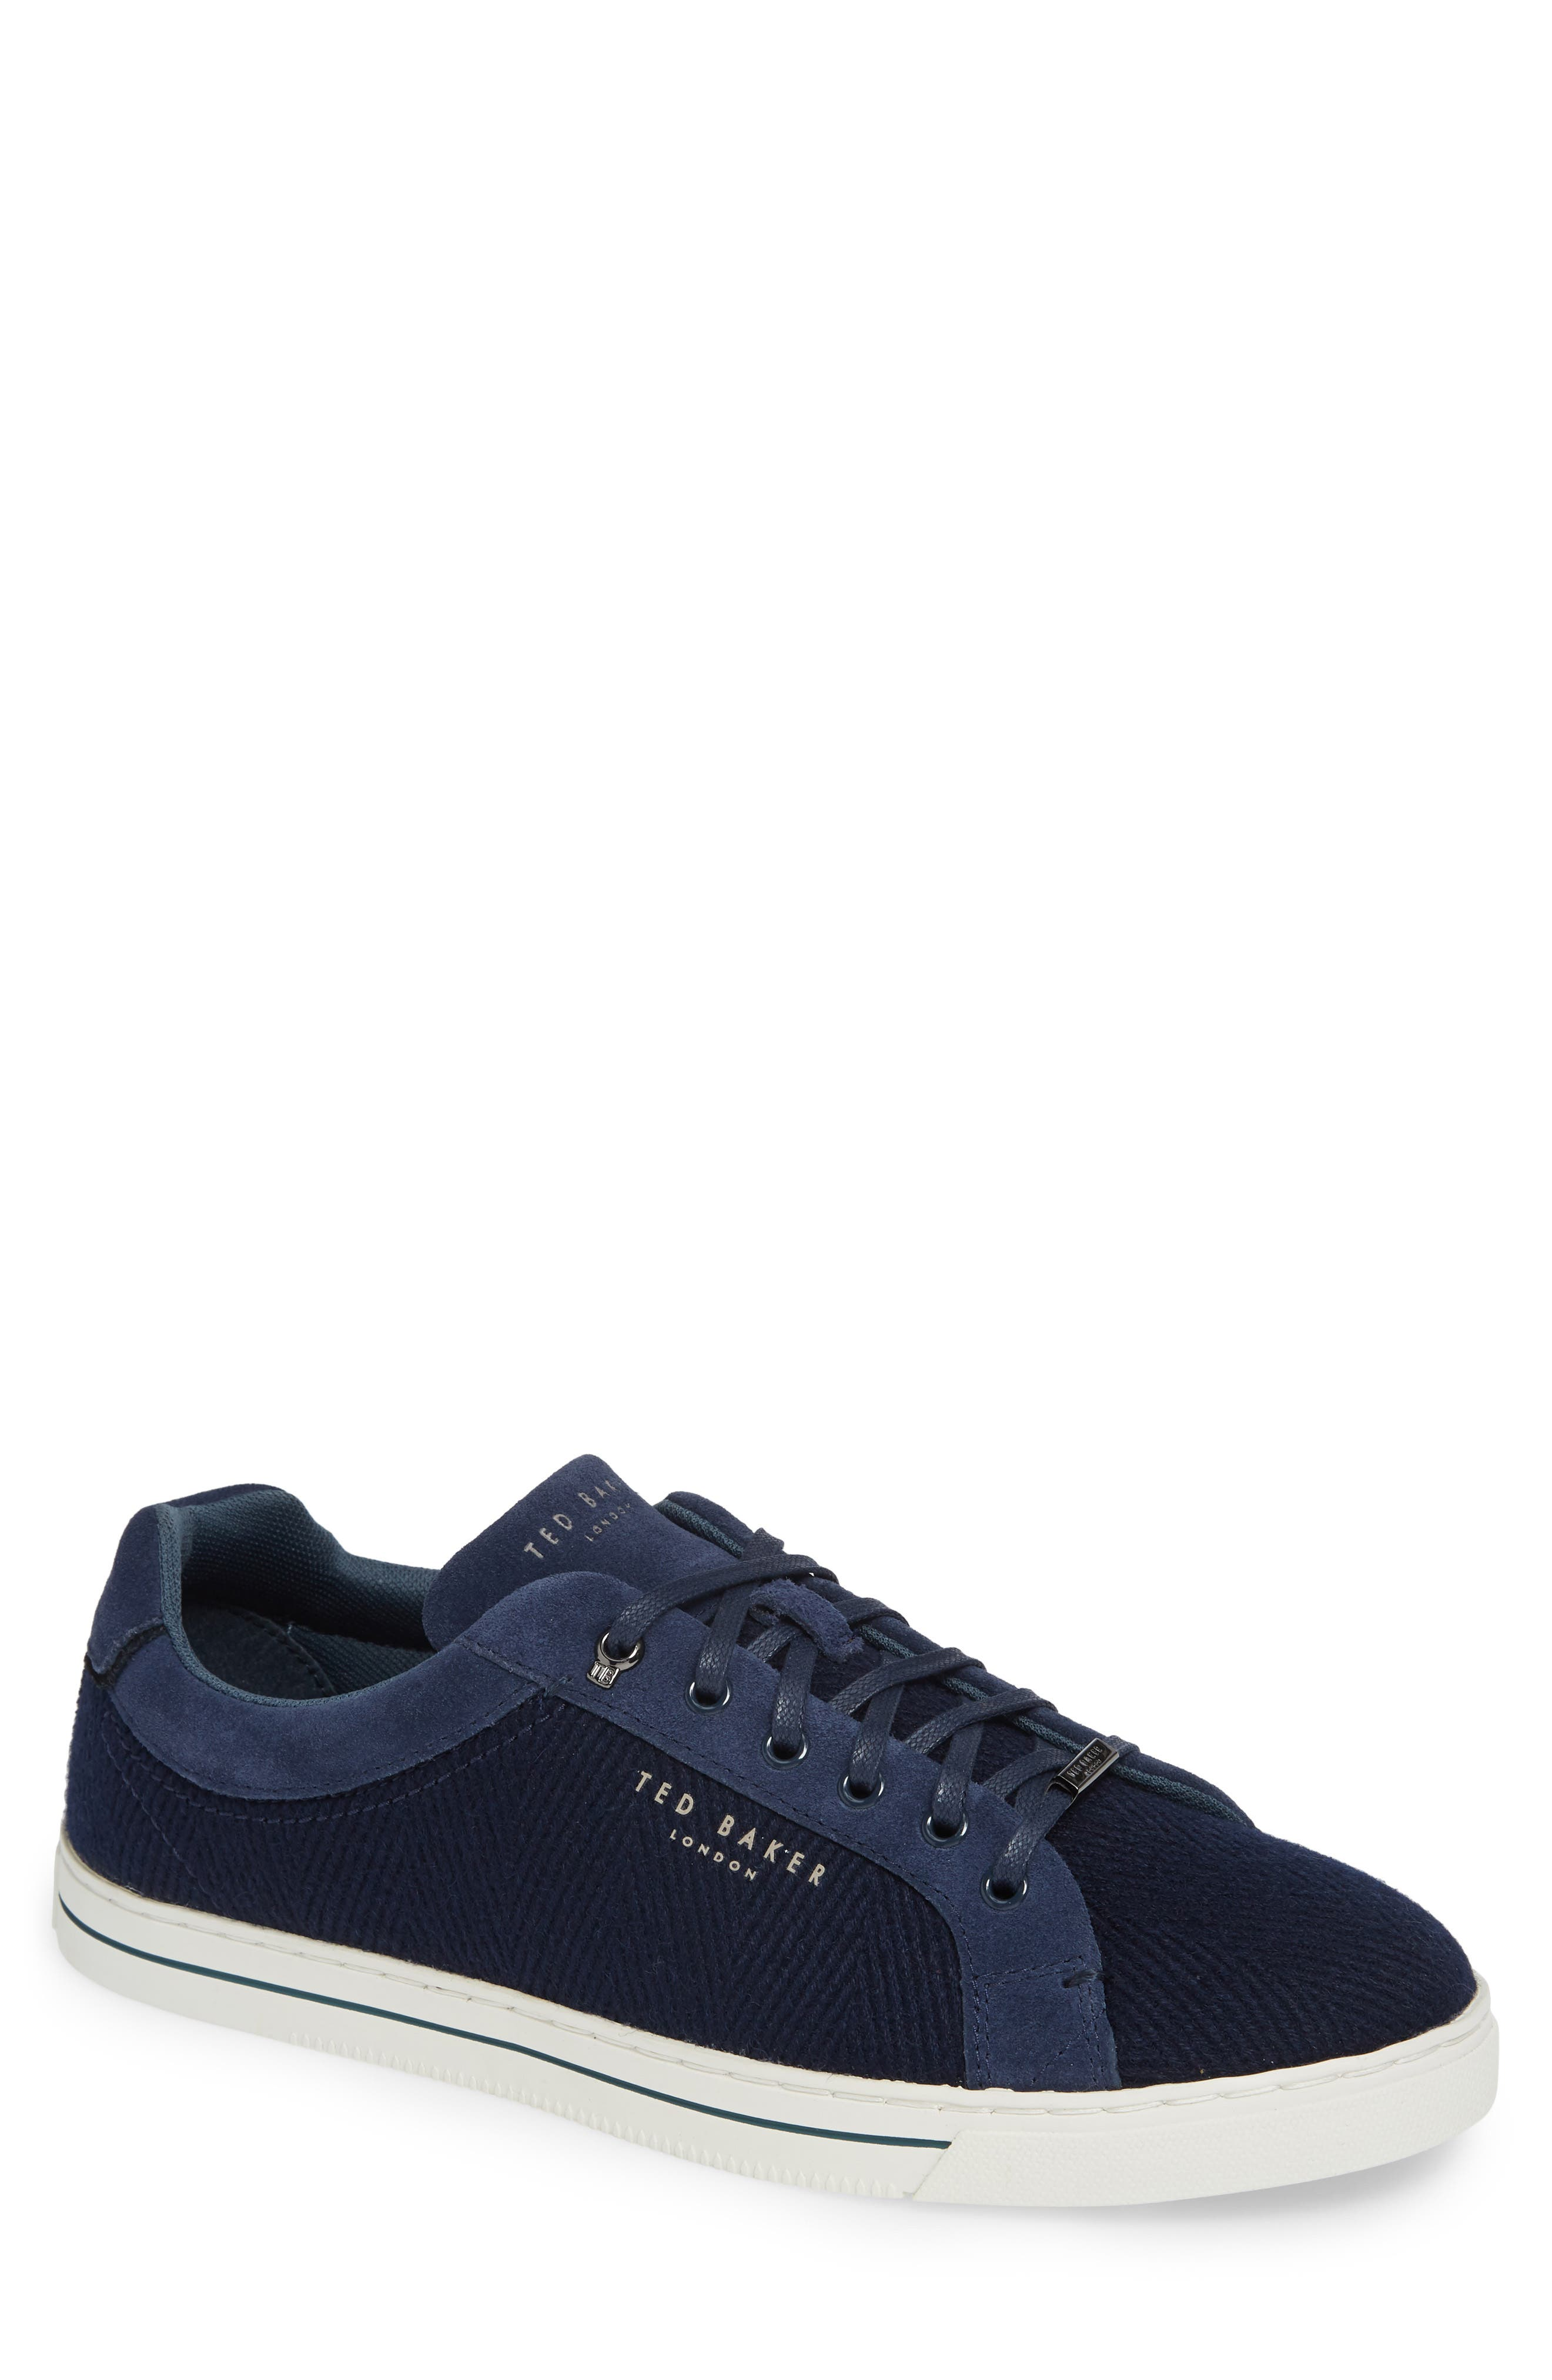 5693fb959710 Sneakers All Ted Baker London